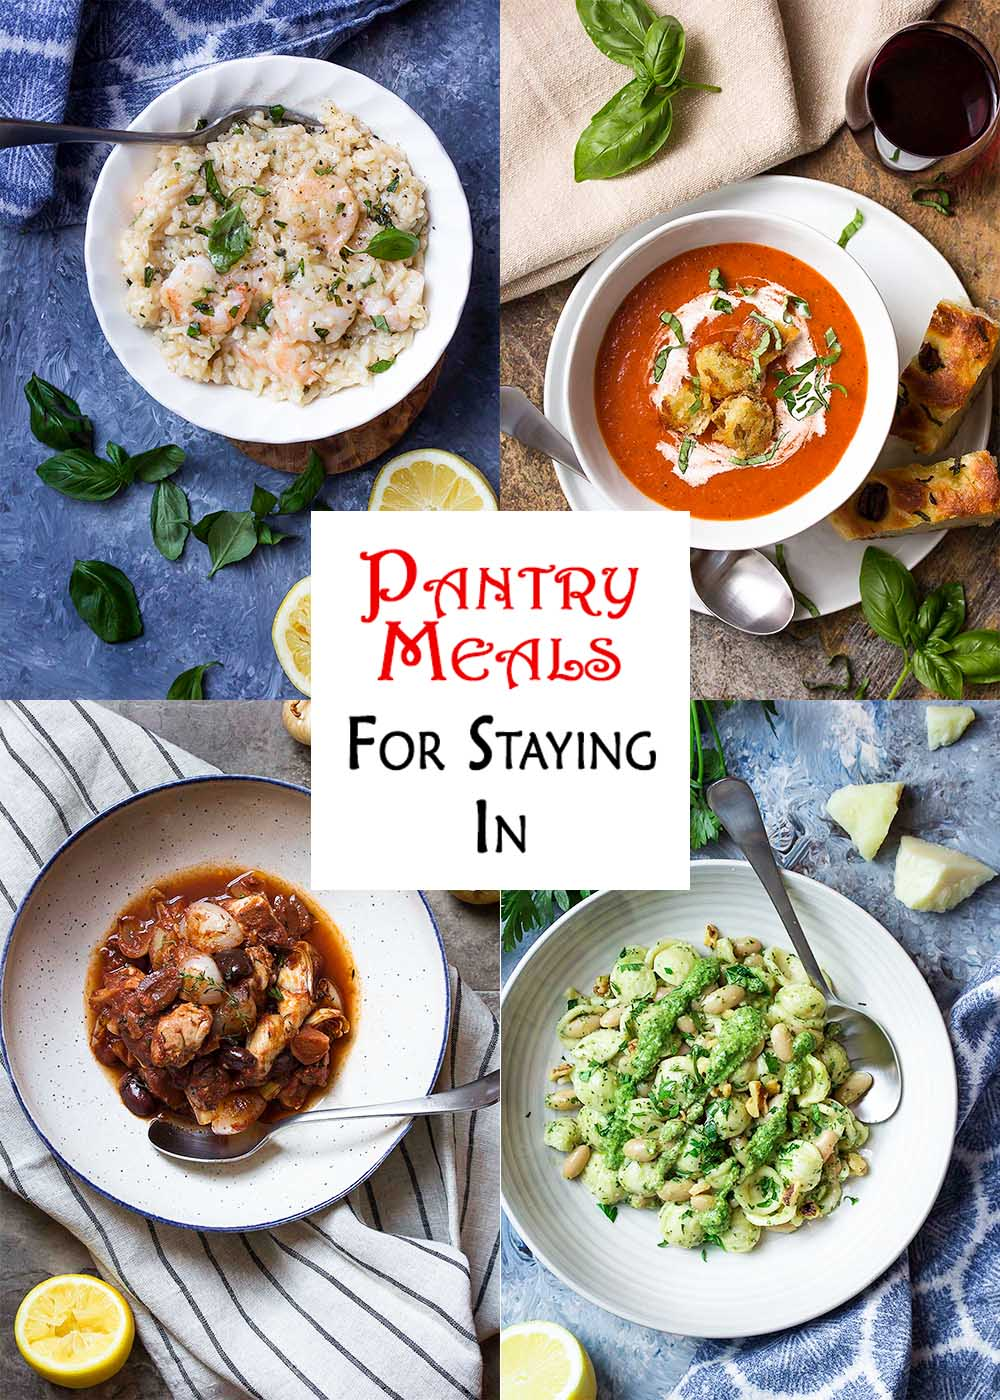 Pantry Meals header image